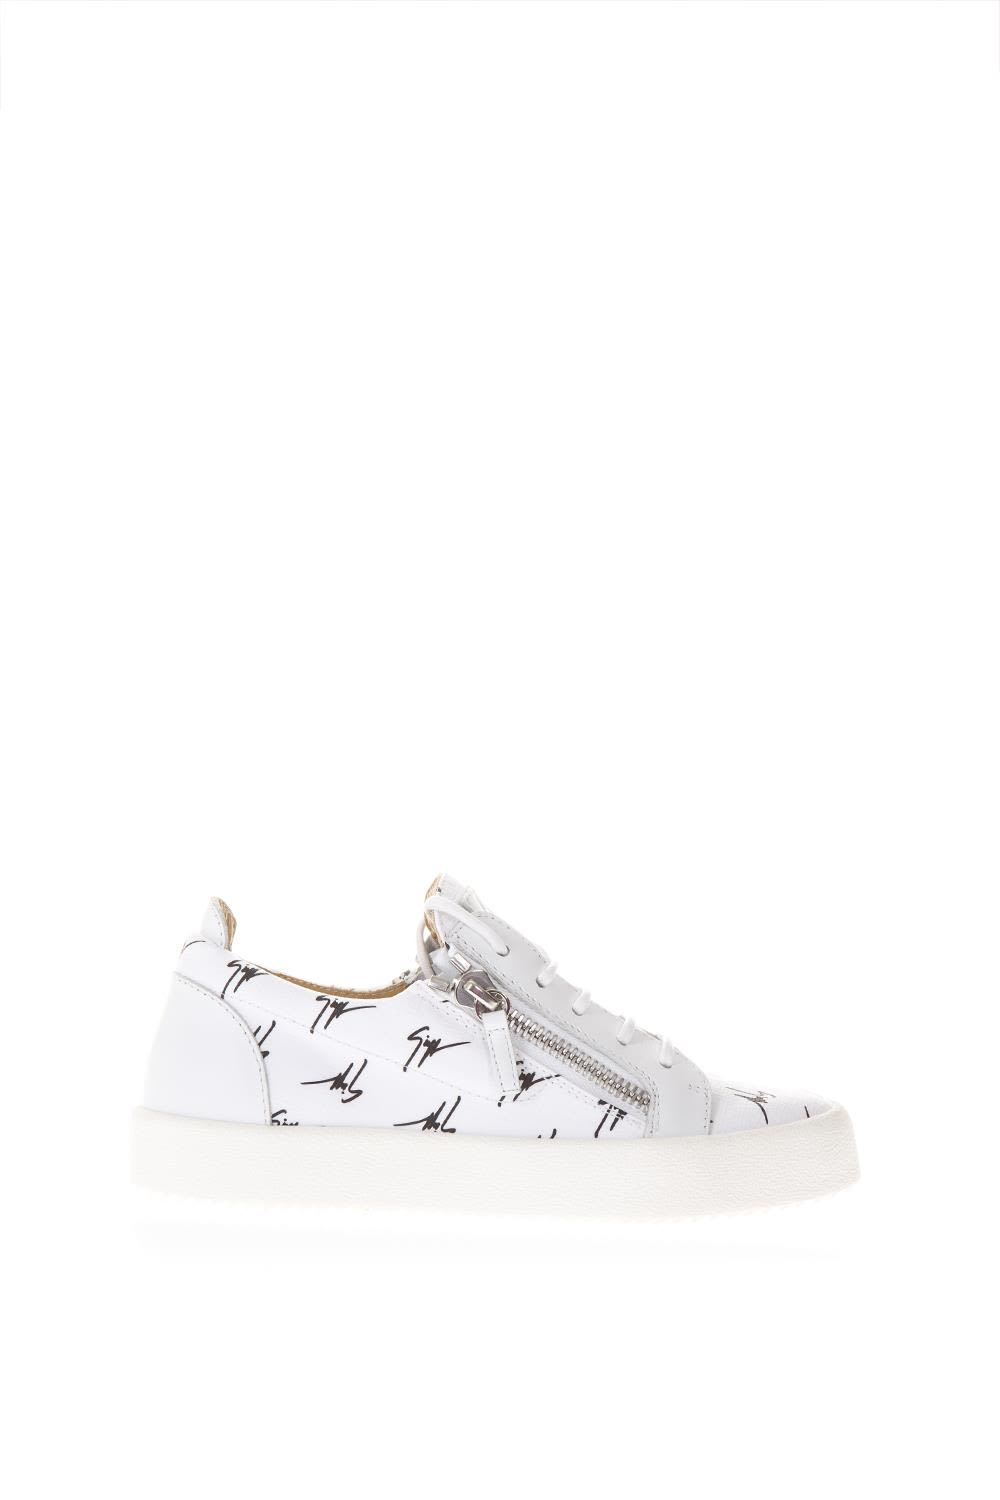 c6d7e923782bd Giuseppe Zanotti White Leather Sneakers With Logo All Over - White ...